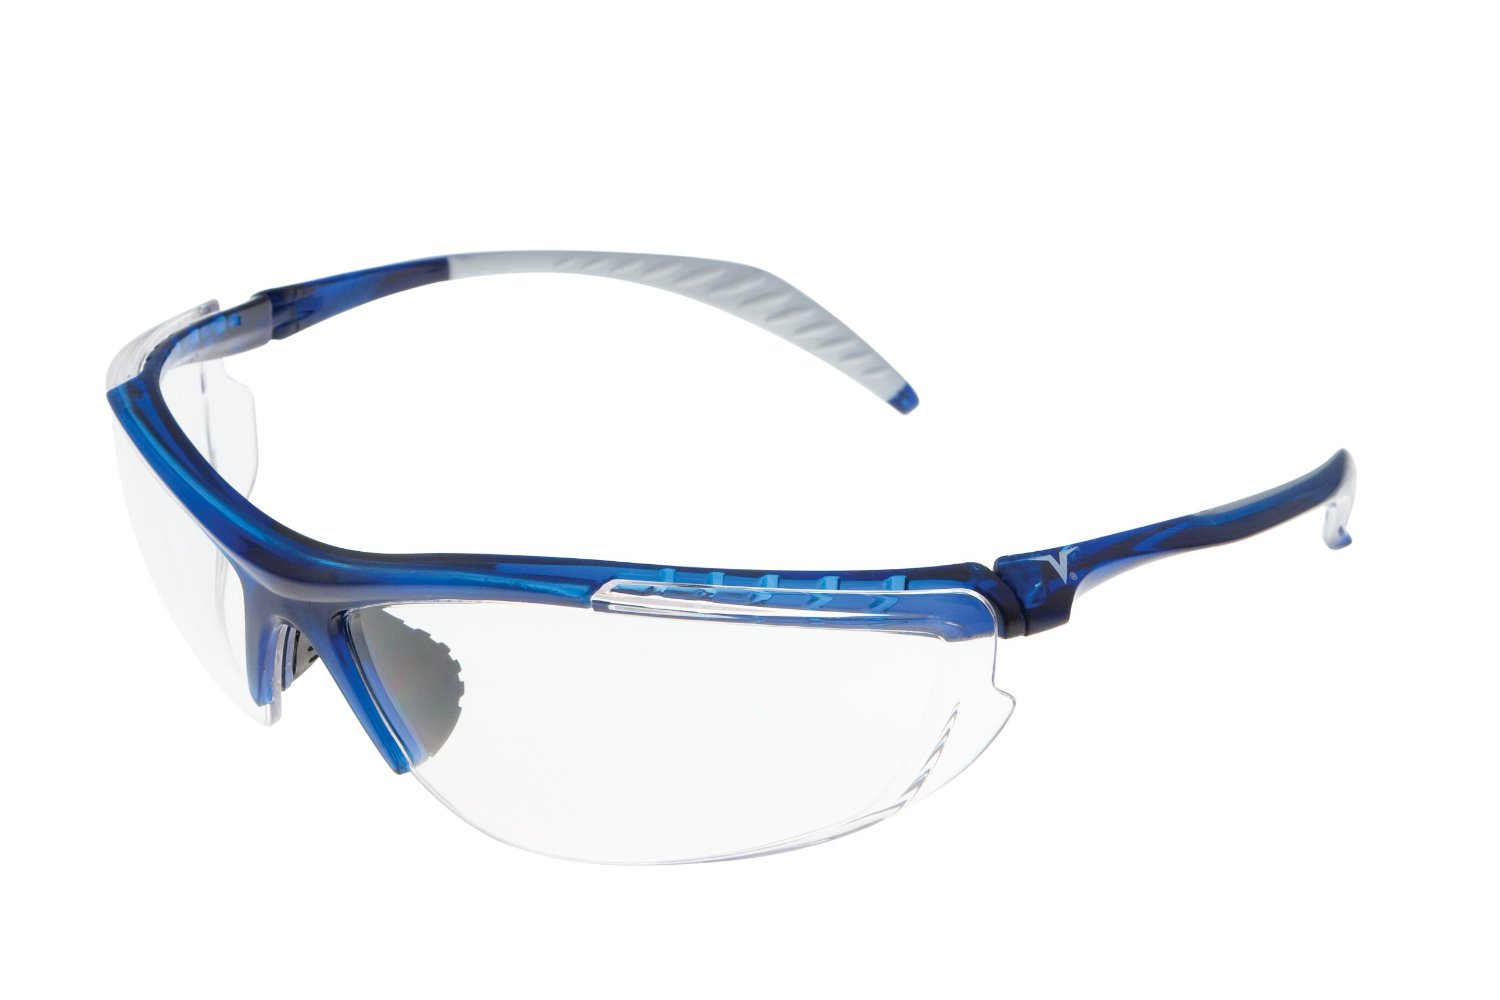 Encon Wraparound Veratti Clear Lens Safety Glasses with a Translucent Blue Frame